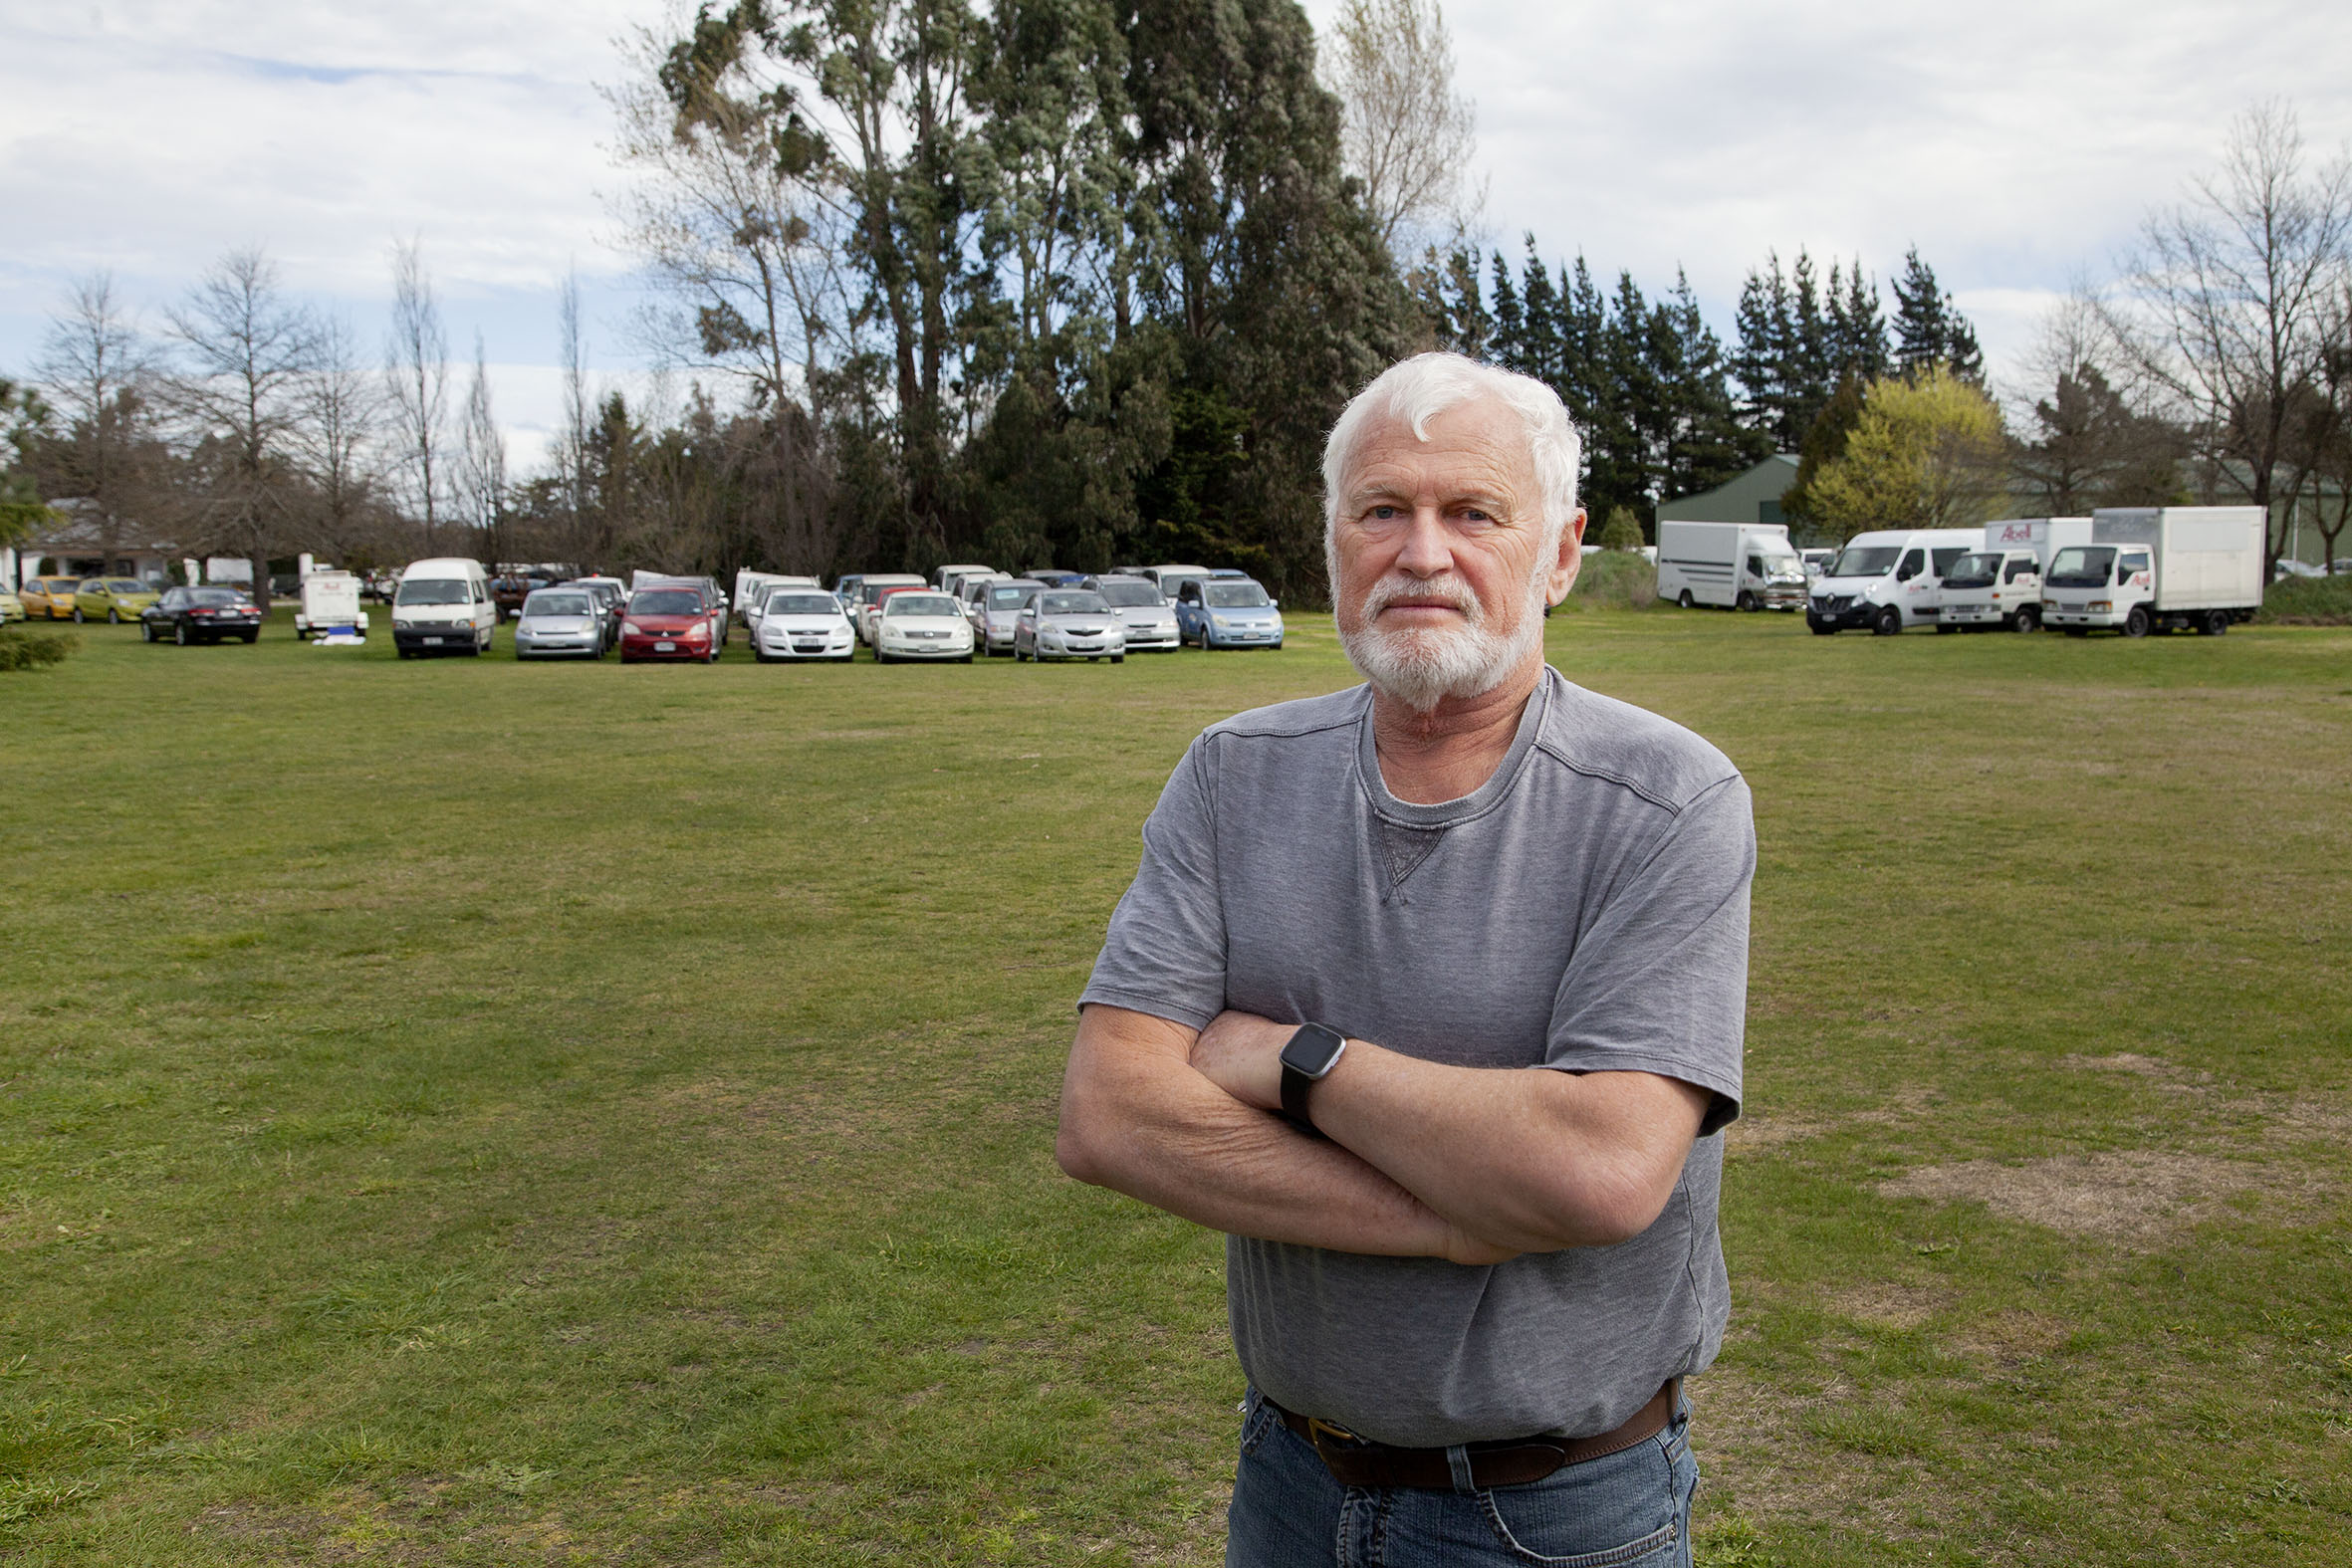 Allan Scott with some of the 80 vehicles he has on his property. Photo: Geoff Sloan